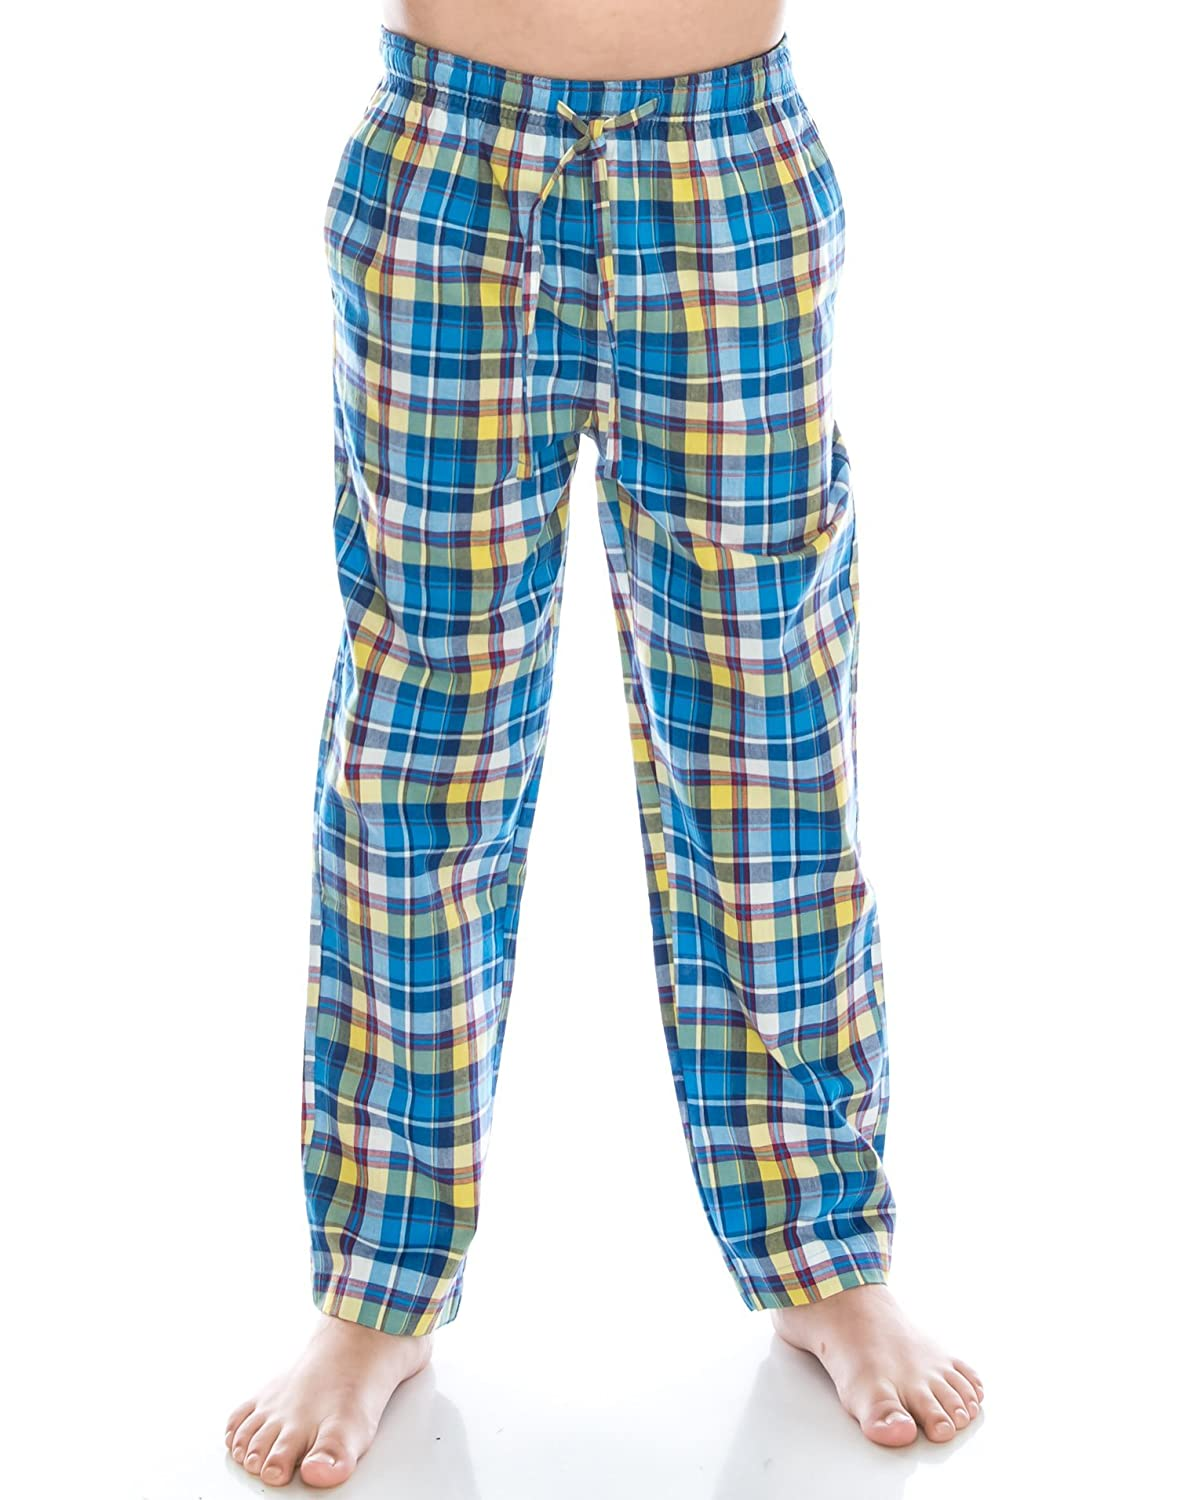 TINFL 6-14 Years Big Boys Plaid Check Soft Lightweight 100% Cotton Lounge Pants TINFL-PB02